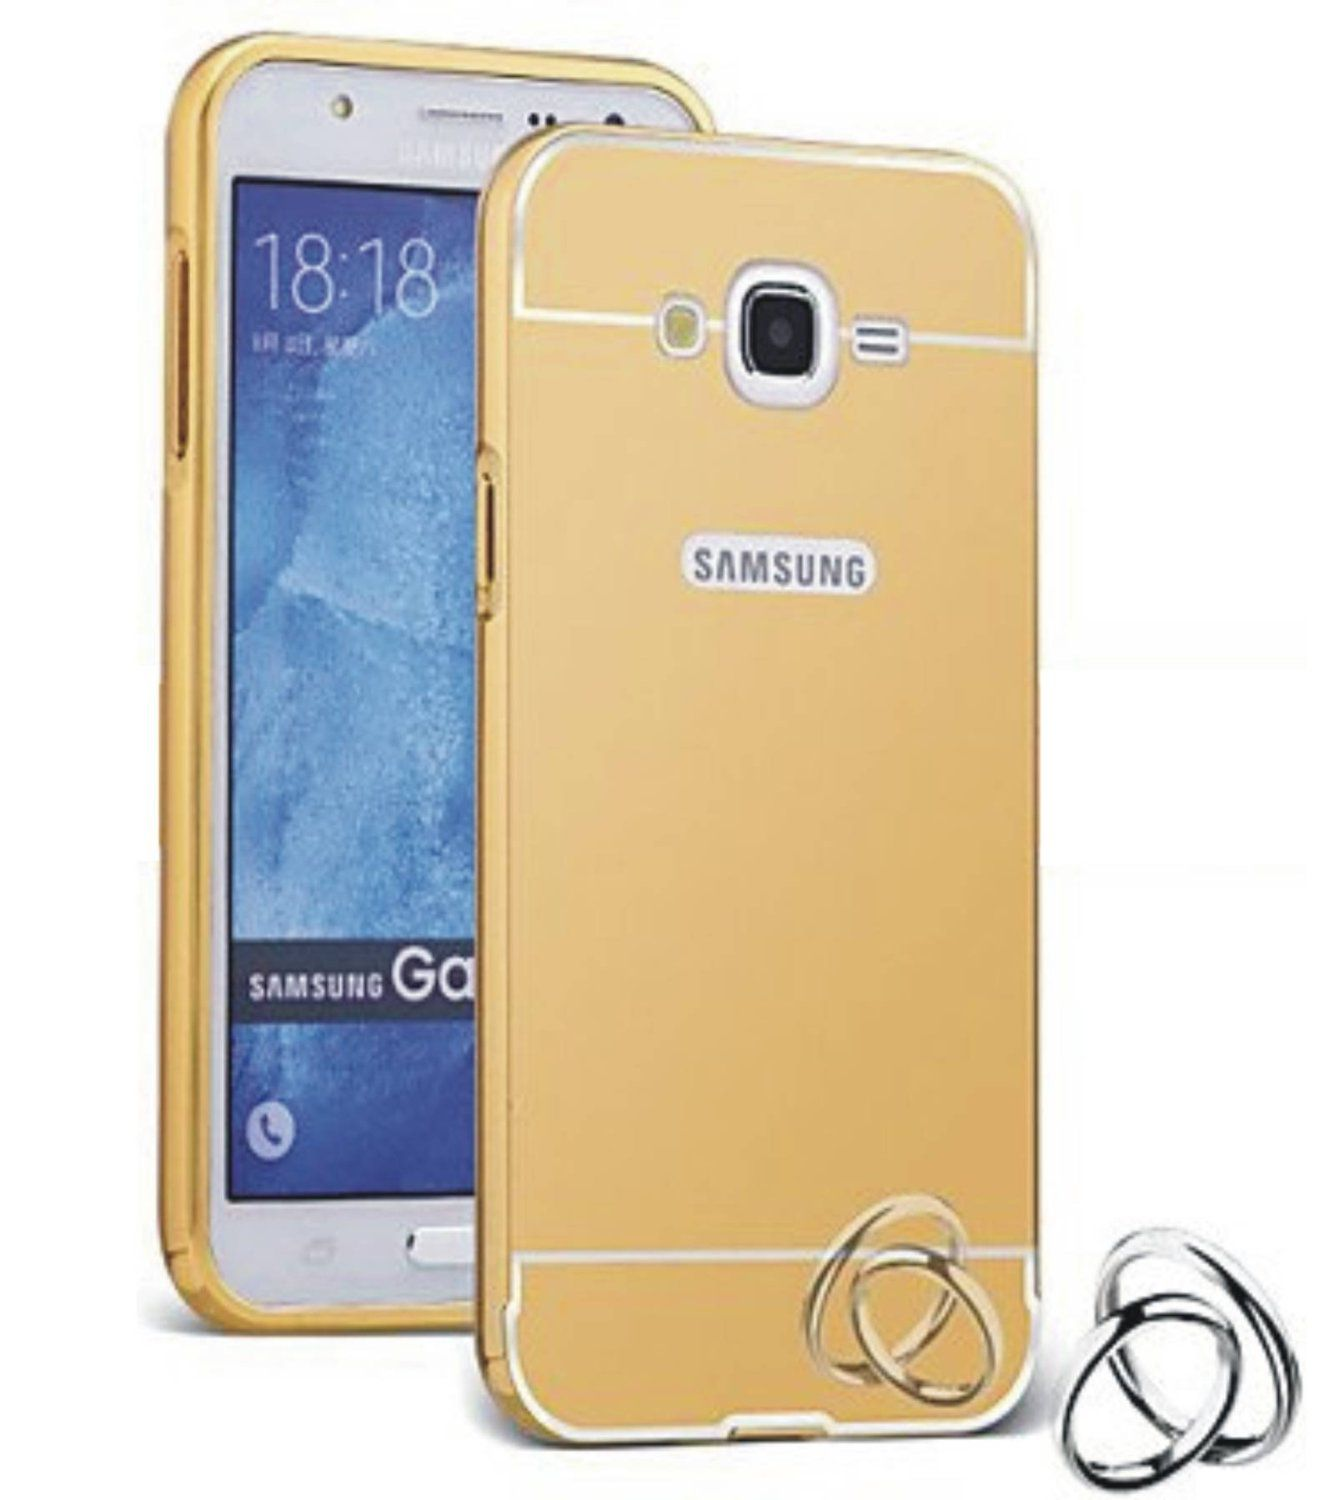 Style Crome Metal Bumper + Acrylic Mirror Back Cover Case For SamsungJ-1  Gold + Flexible Portable Thumb OK Stand